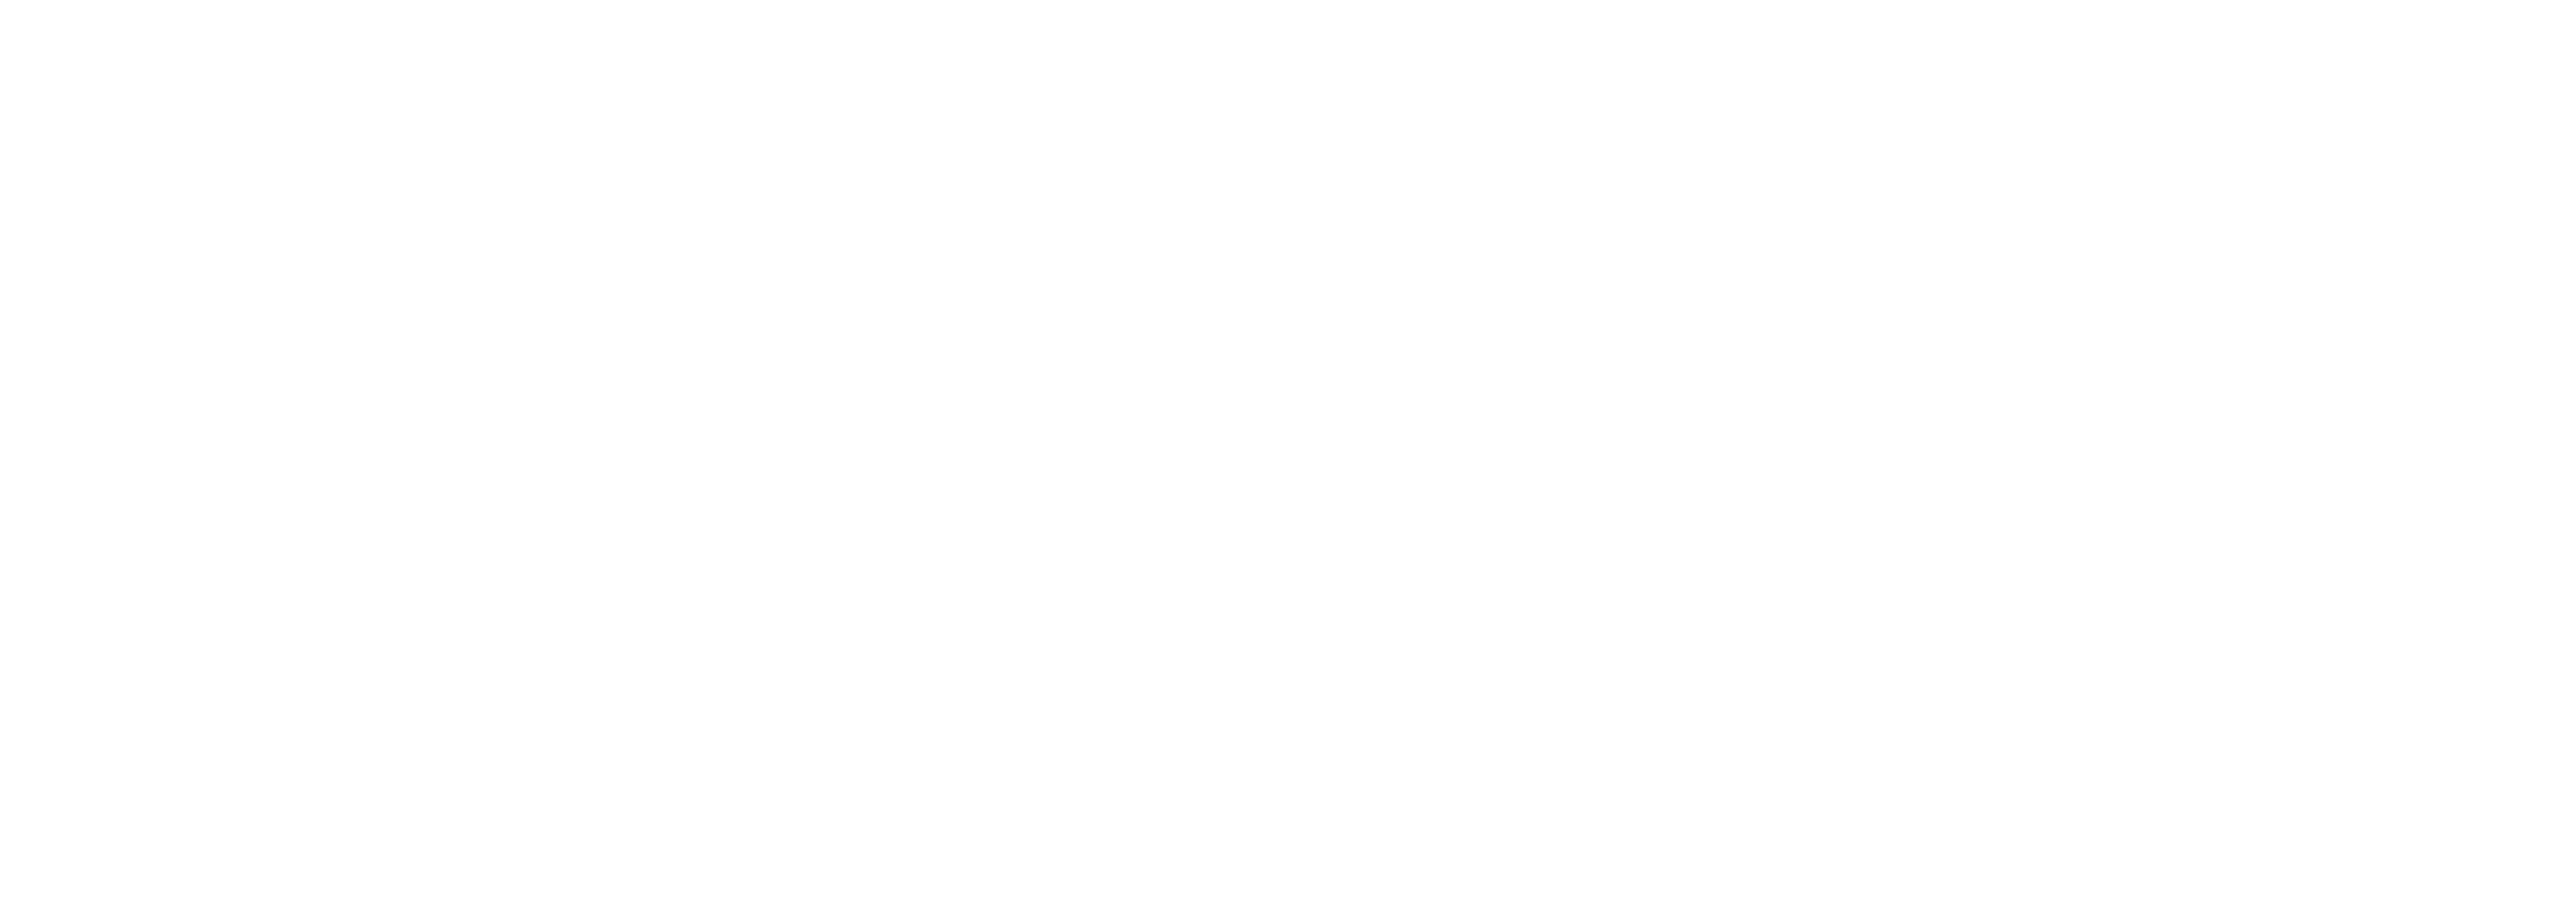 https://maroochy.org/wp-content/uploads/2021/09/Telstra-Logo-White.png